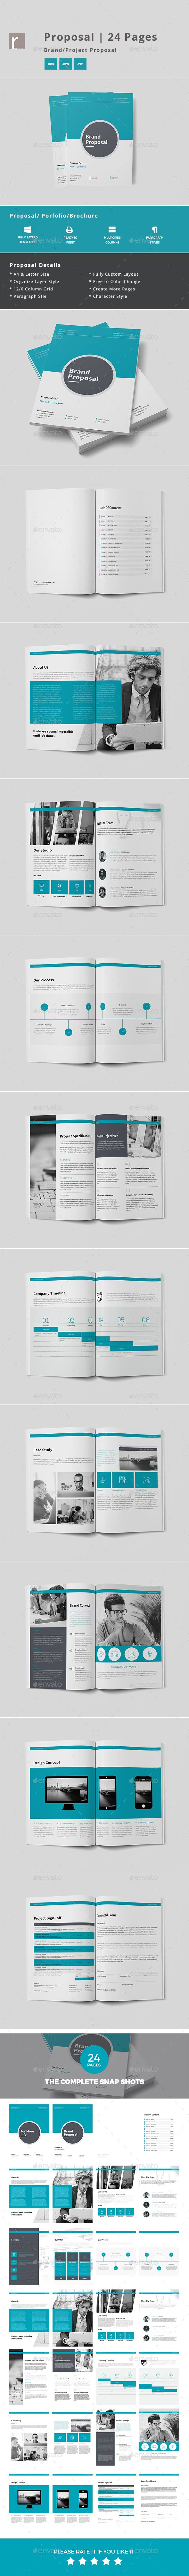 24 Pages Proposal Template InDesign INDD Download